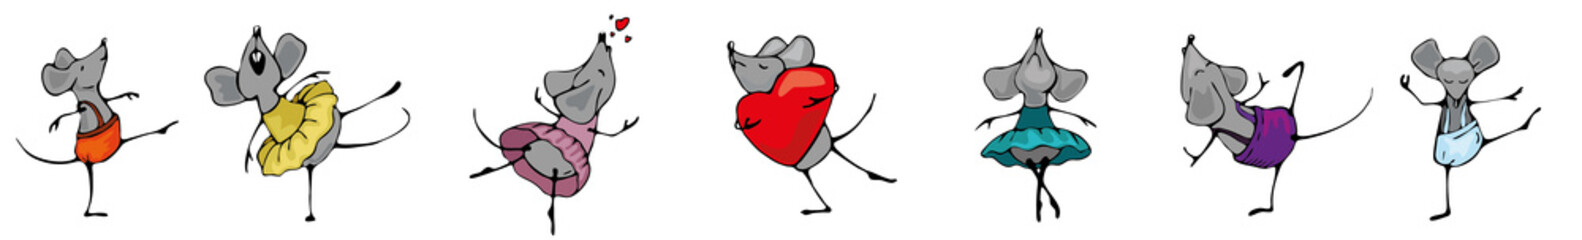 Set the mouse festive seamless background in Valentine's day or postcards to print. Festive birthday frame with dancing mice and hearts. The symbol of the year is a rat with a heart in its paws.